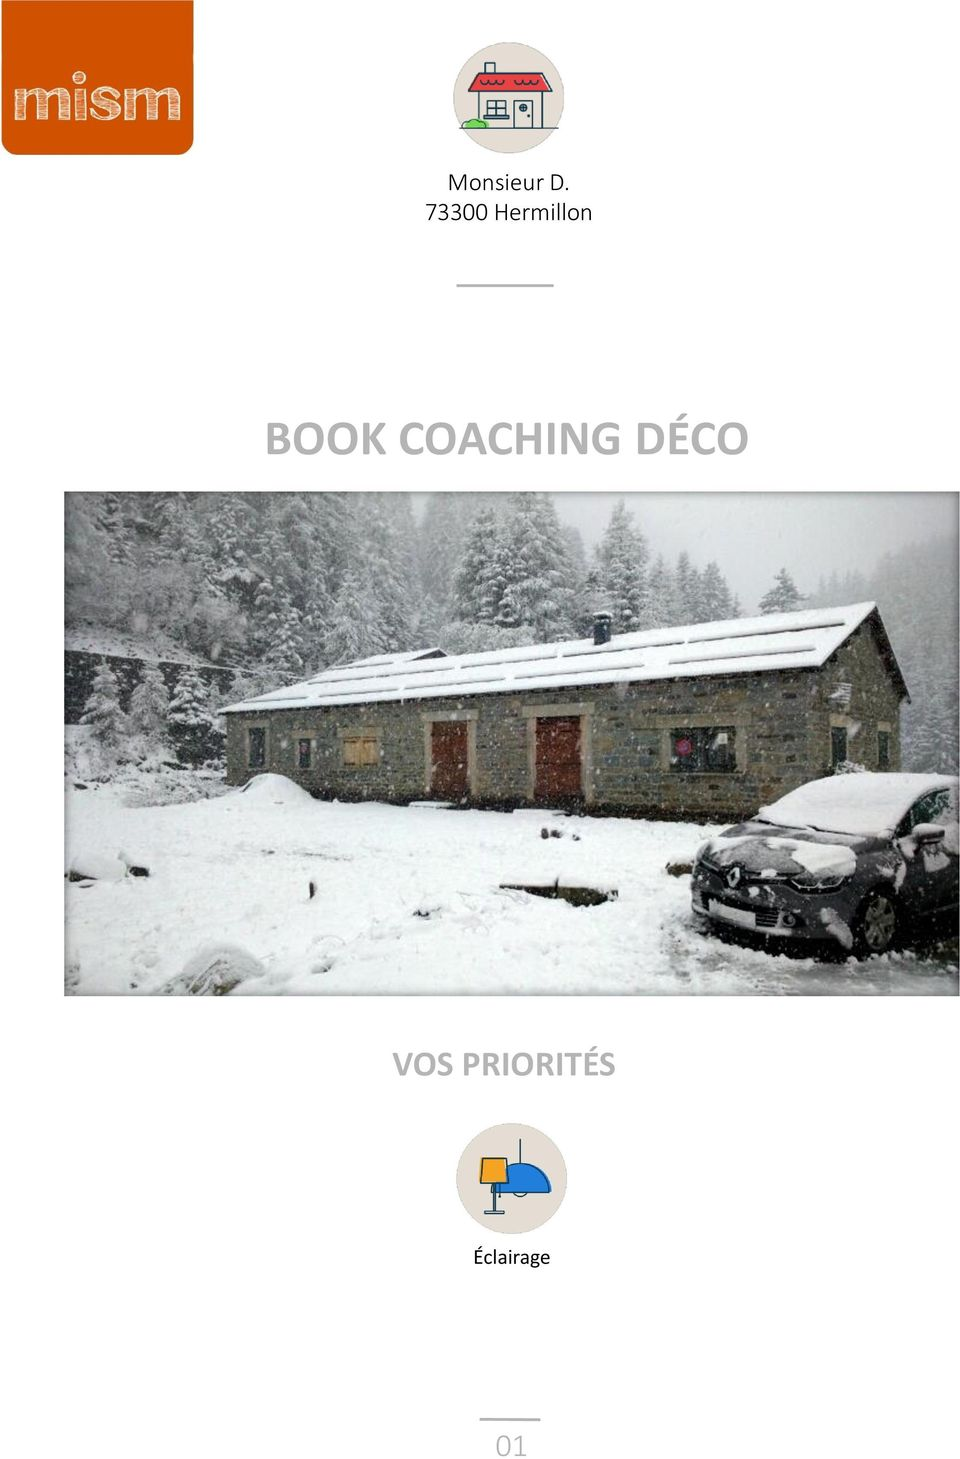 BOOK COACHING DÉCO